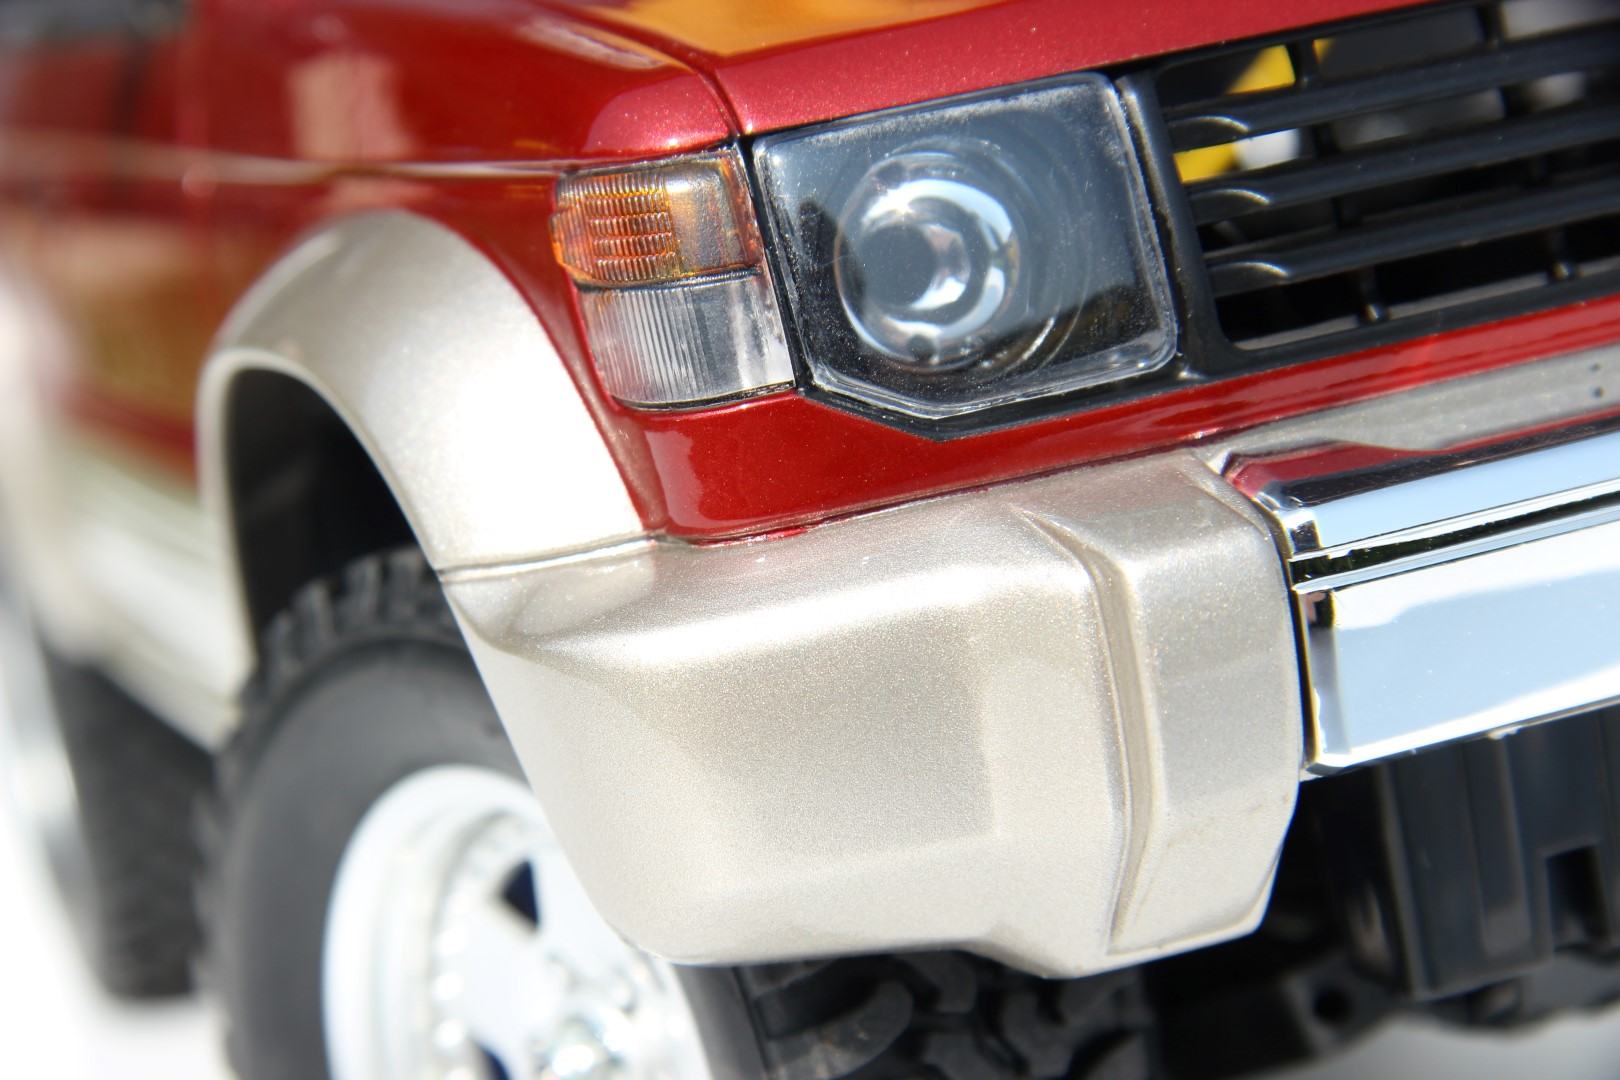 European headlight covers for Mitsubishi Pajero